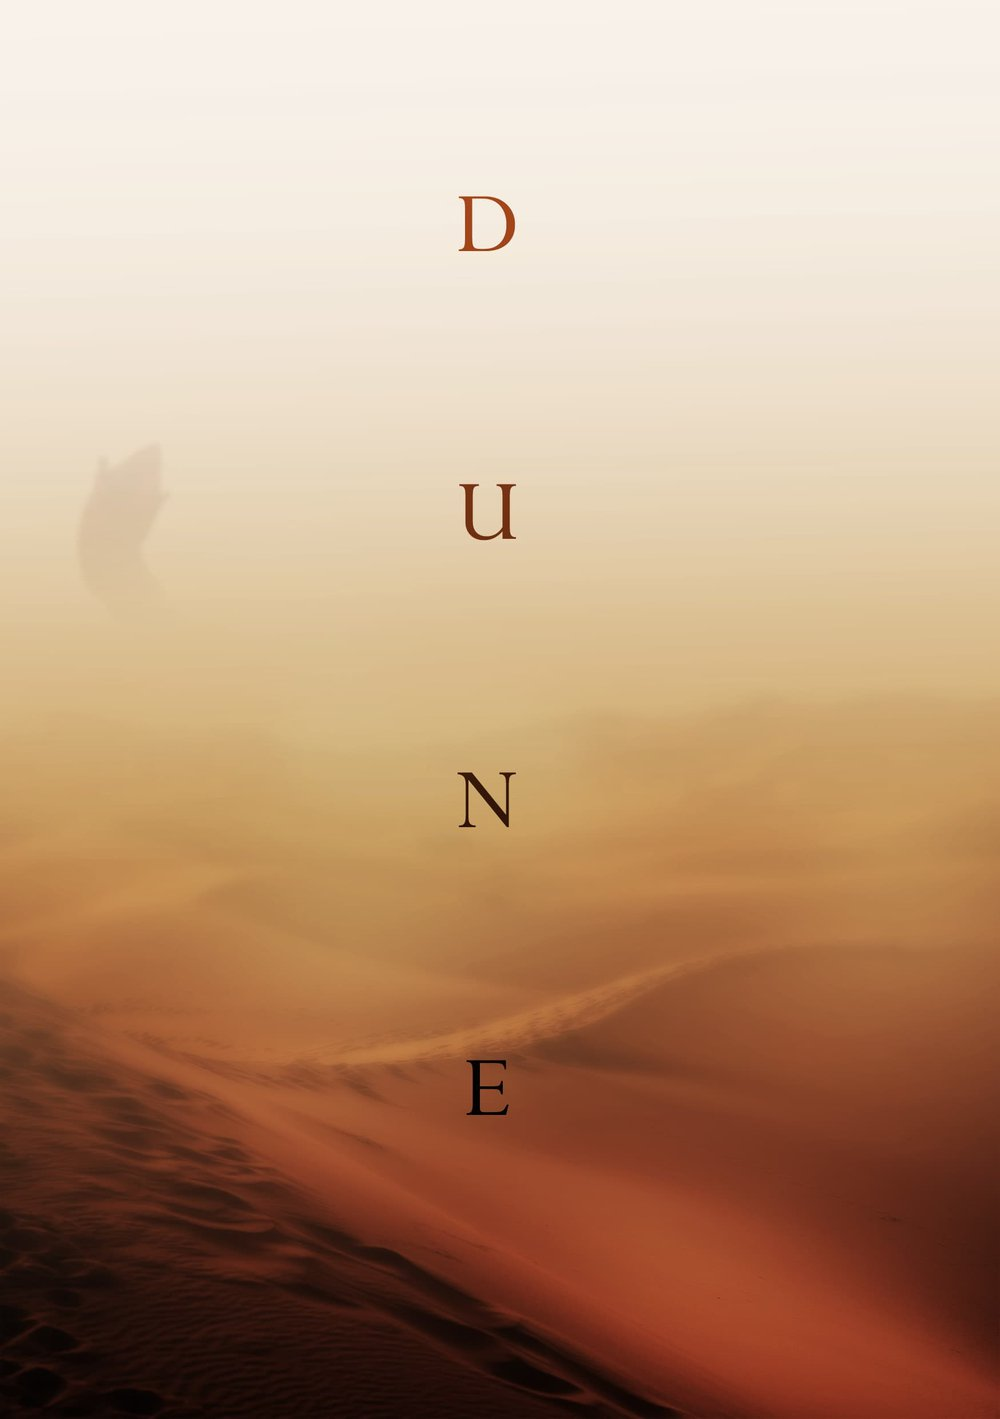 2020 Most Anticipated Sci-Fi Movies - Dune-2020-movie-poster